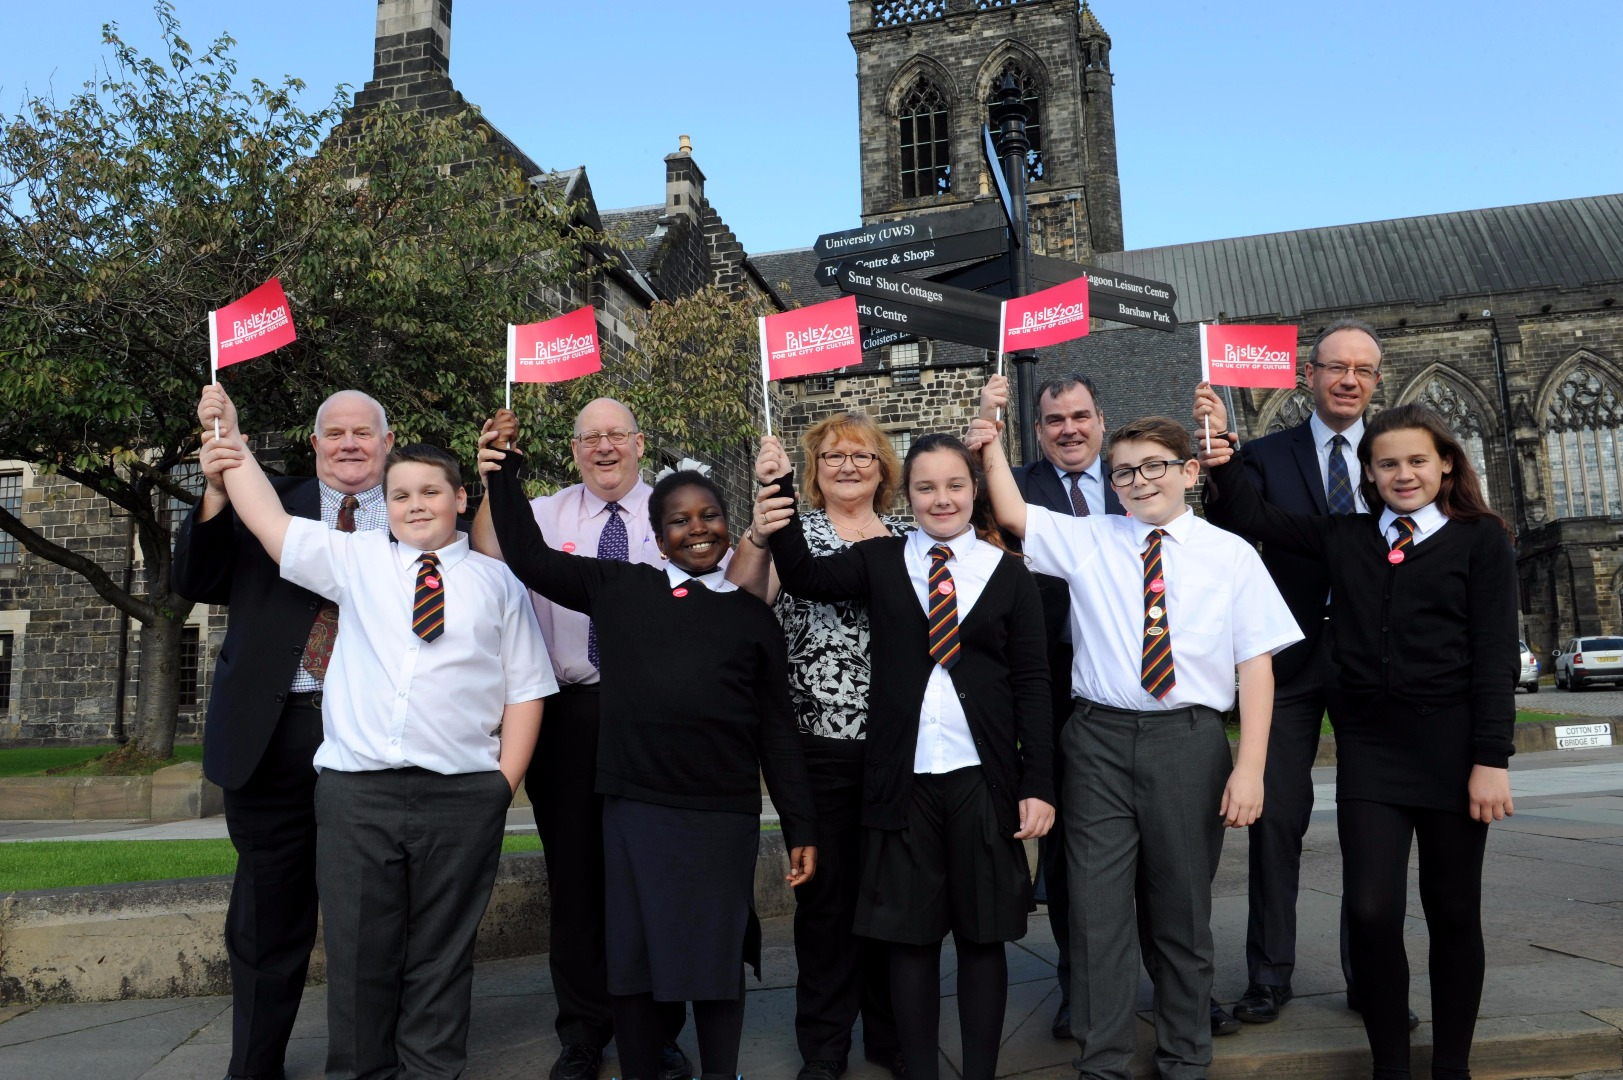 Paisley 2021 bid backed by all local party leaders